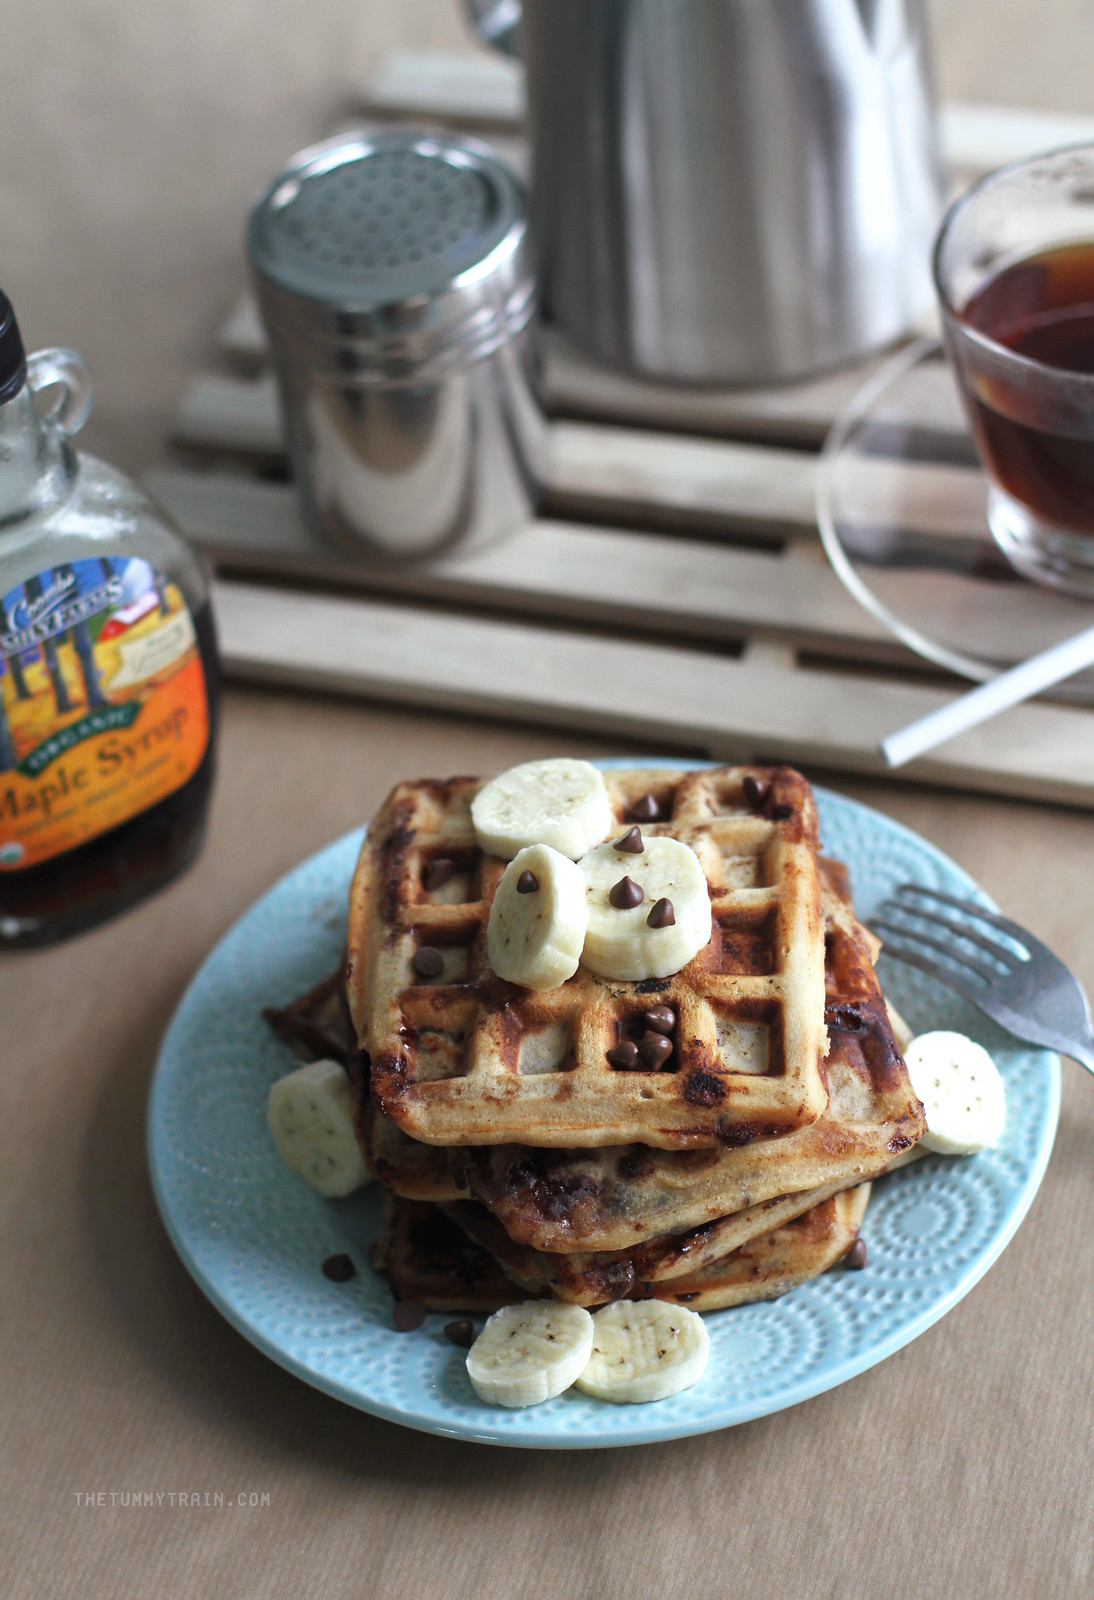 16889331406 2707a8baac h - Peanut Butter Banana Waffles coz it's Waffle Day!